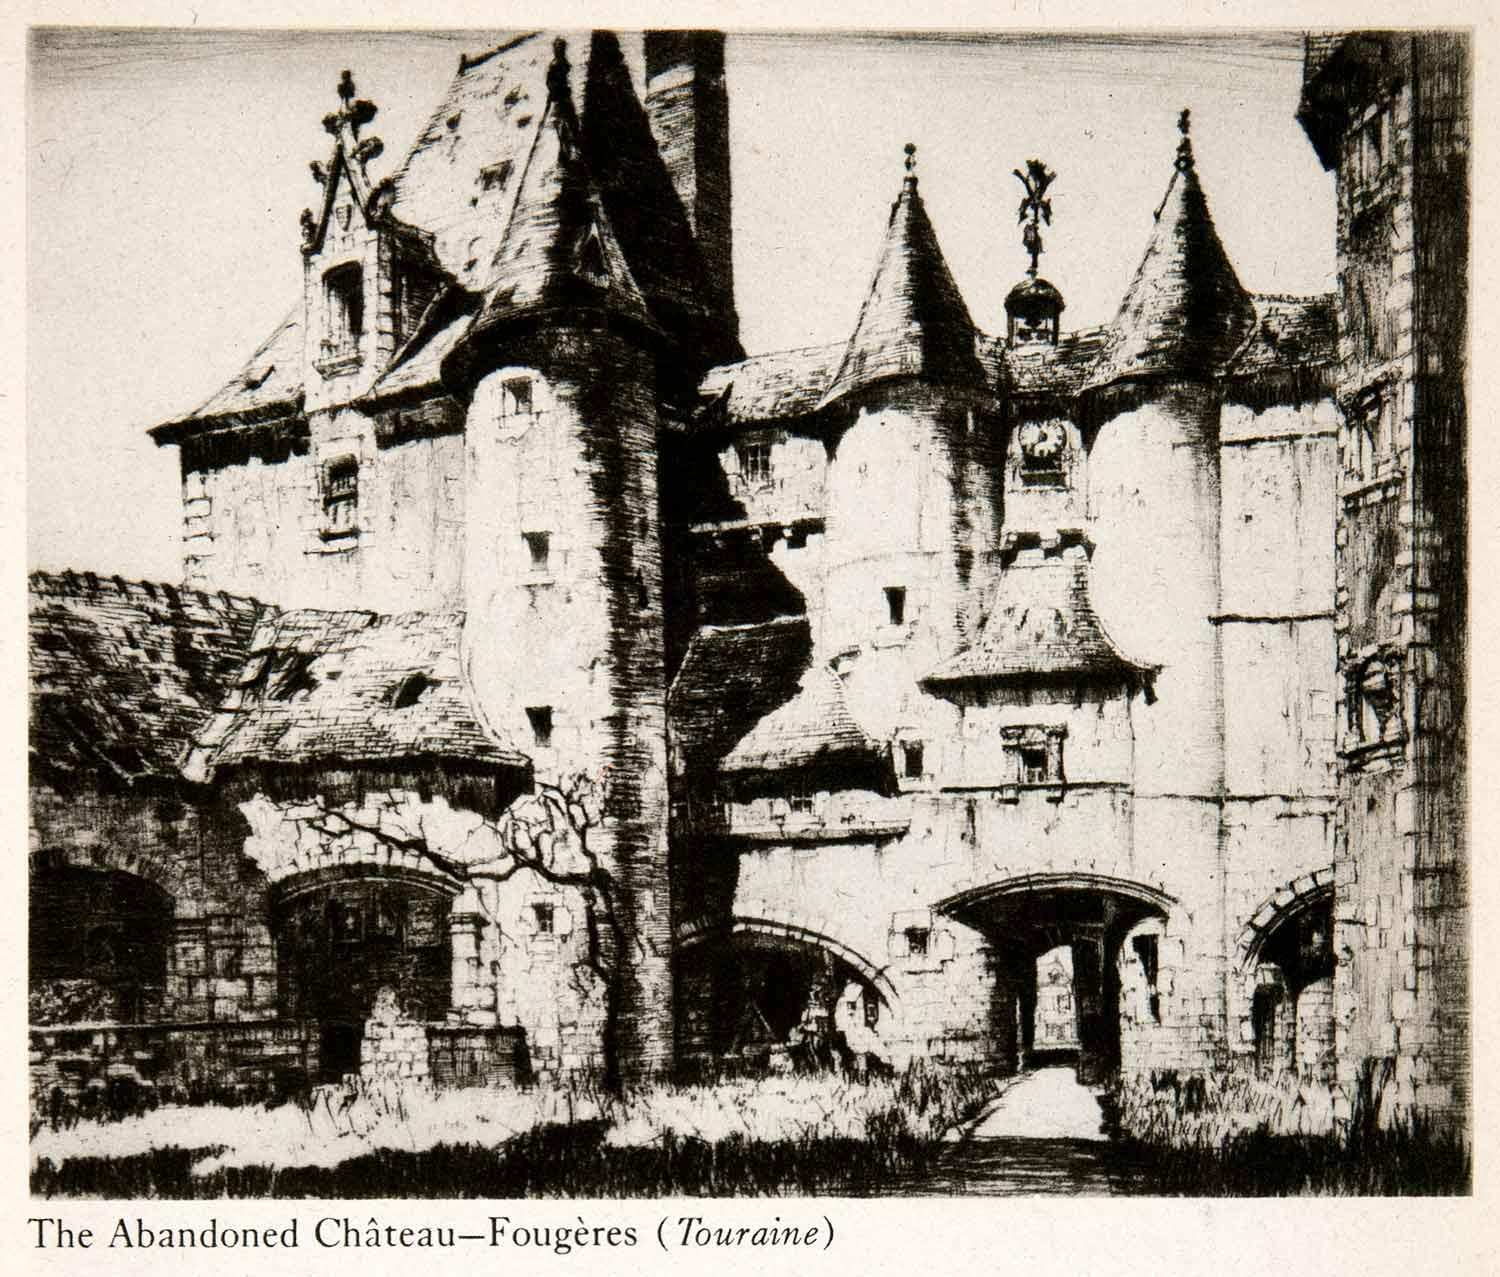 1944 Photogravure Chamberlain Chateay Fougeres Brittany France Ille XGWB8